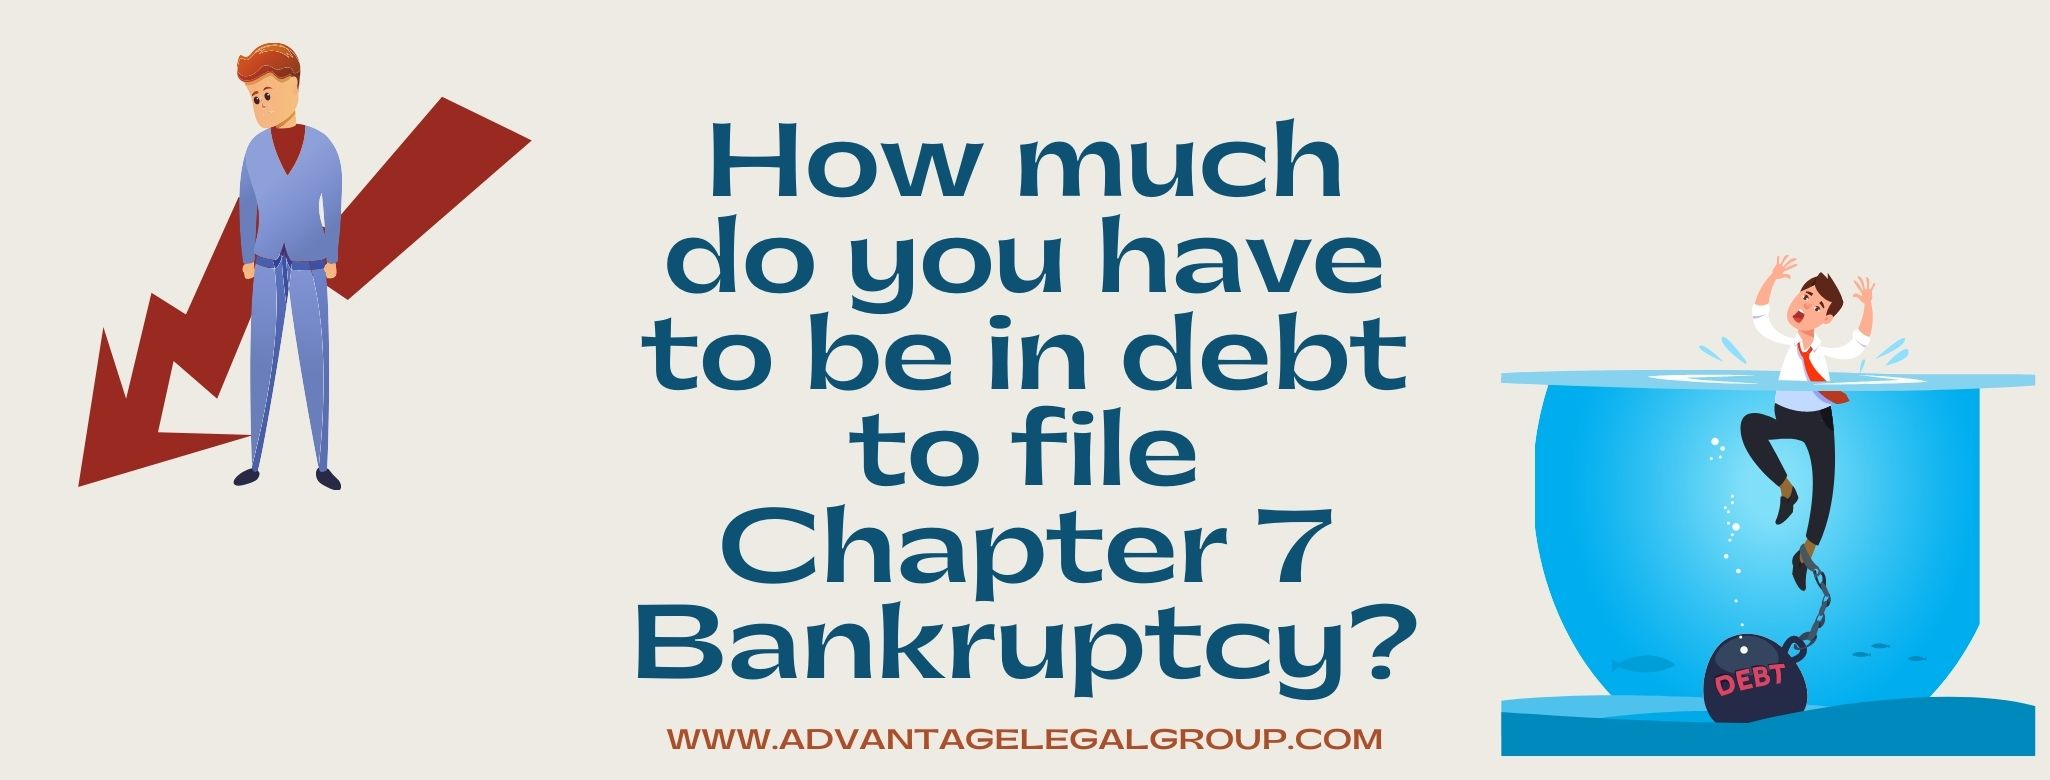 How much do you have to be in debt to file Chapter 7 Bankruptcy?